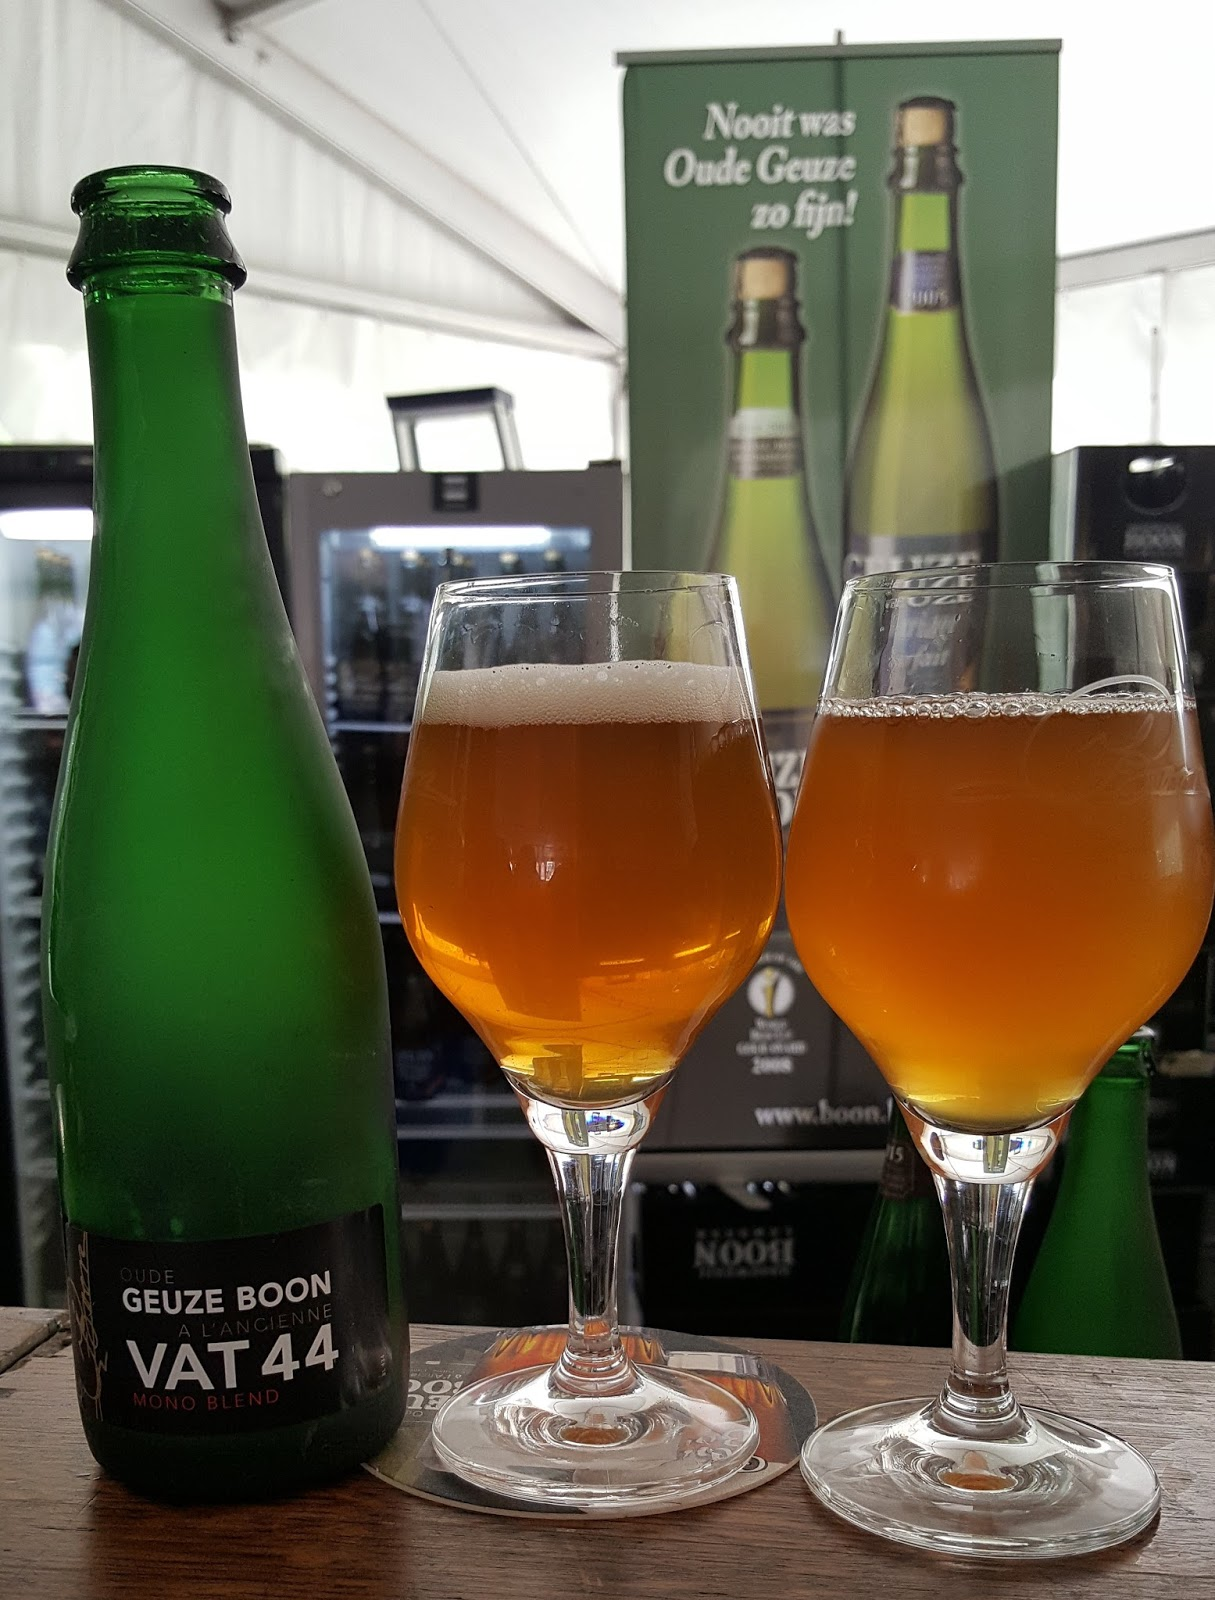 The Beer Nut Geuze Bus Tours Boon Squirt Green Kiwi Early In Proceedings As Smaller One At Other End Was Dishing Out Specials And Rarities Some From Frank Boons Personal Stash Apparently